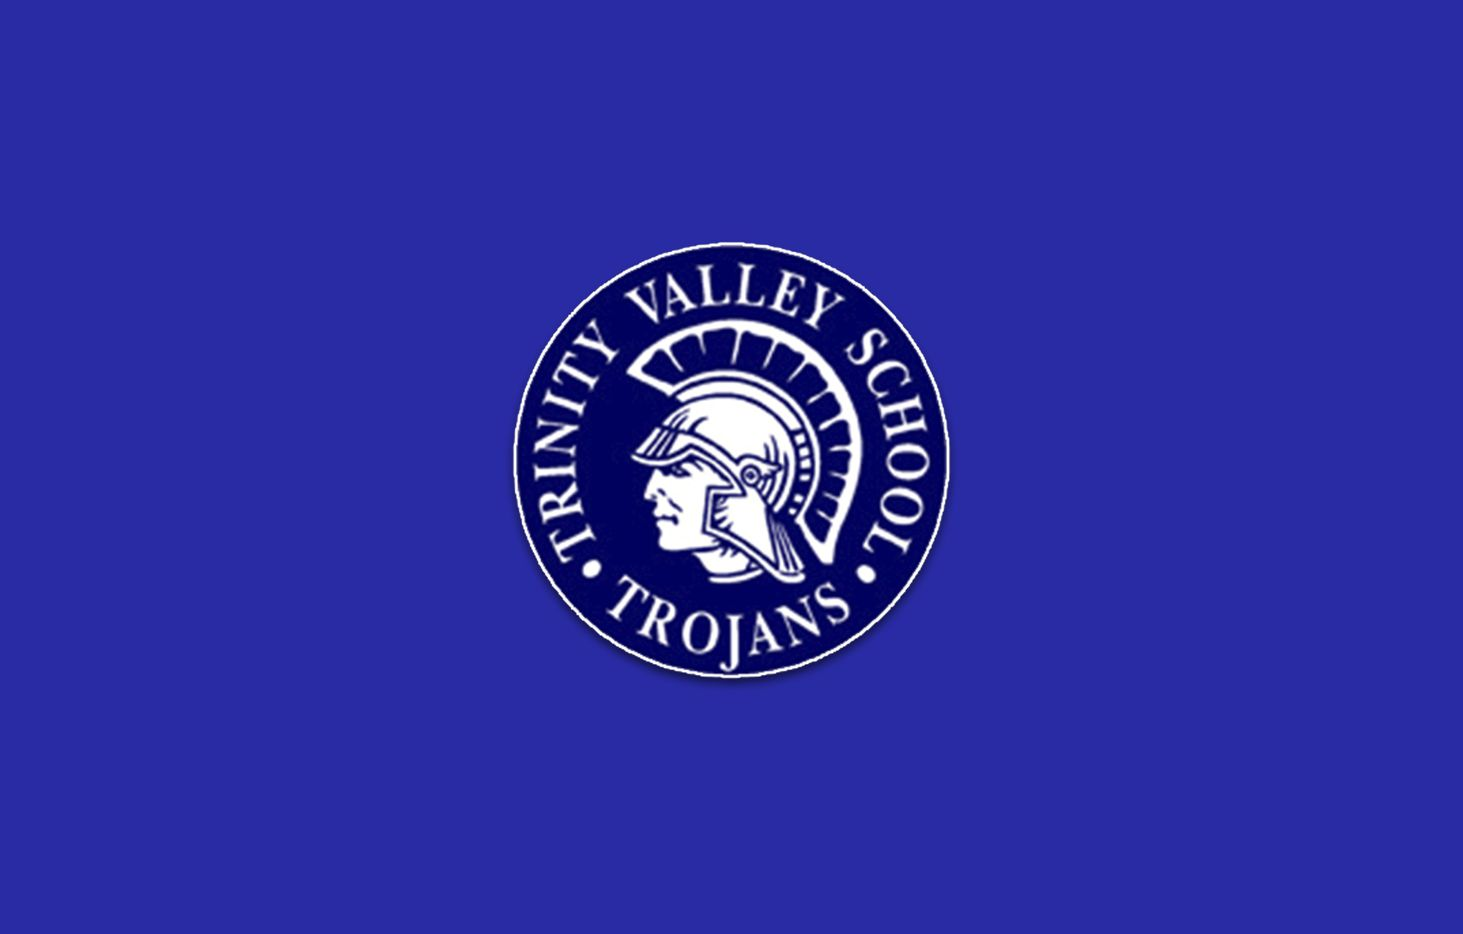 Fort Worth Trinity Valley logo.